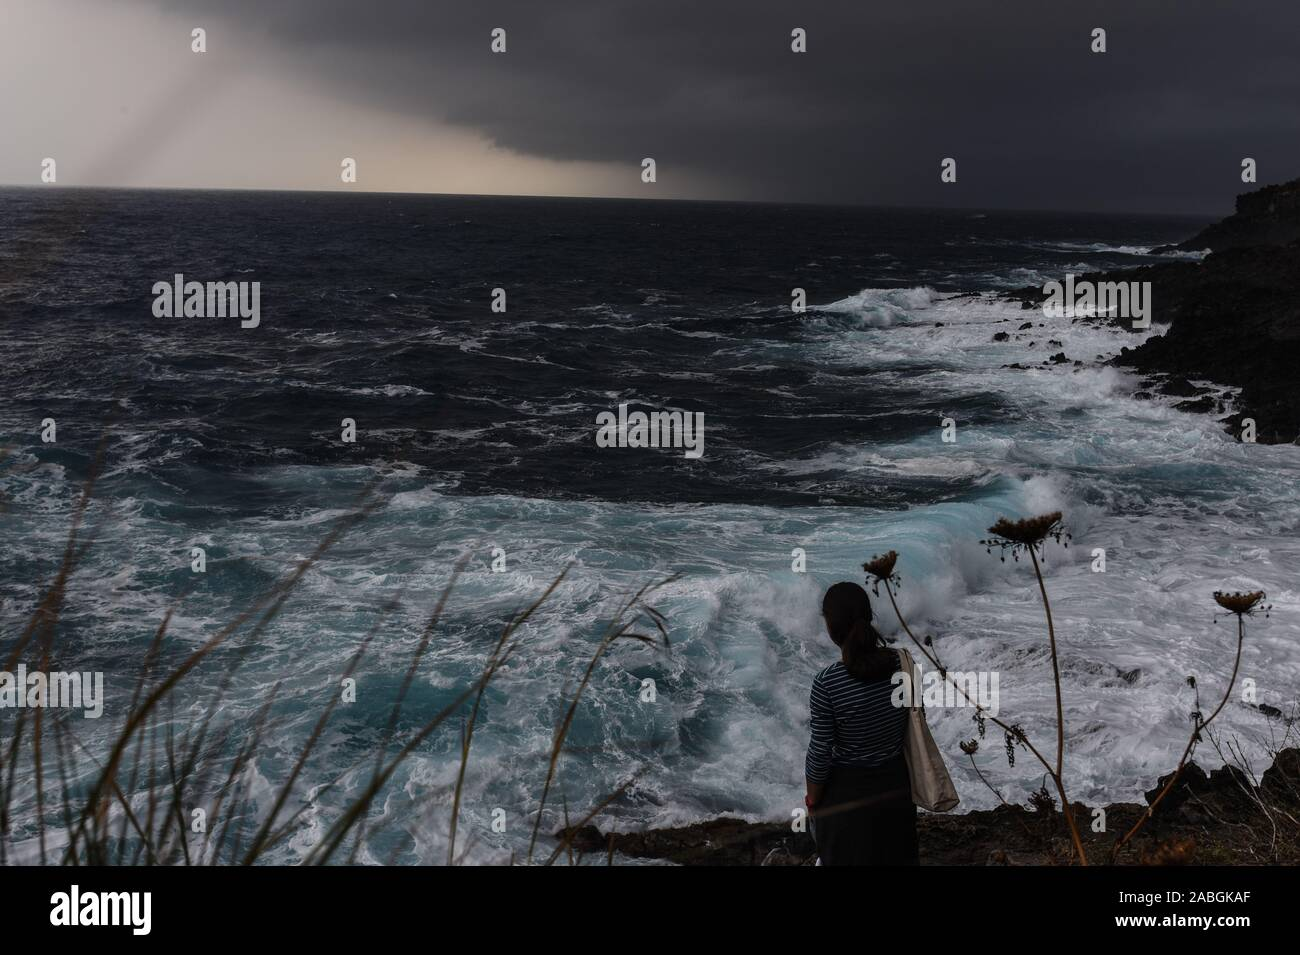 Stormy Sea in Pantelleria Stock Photo